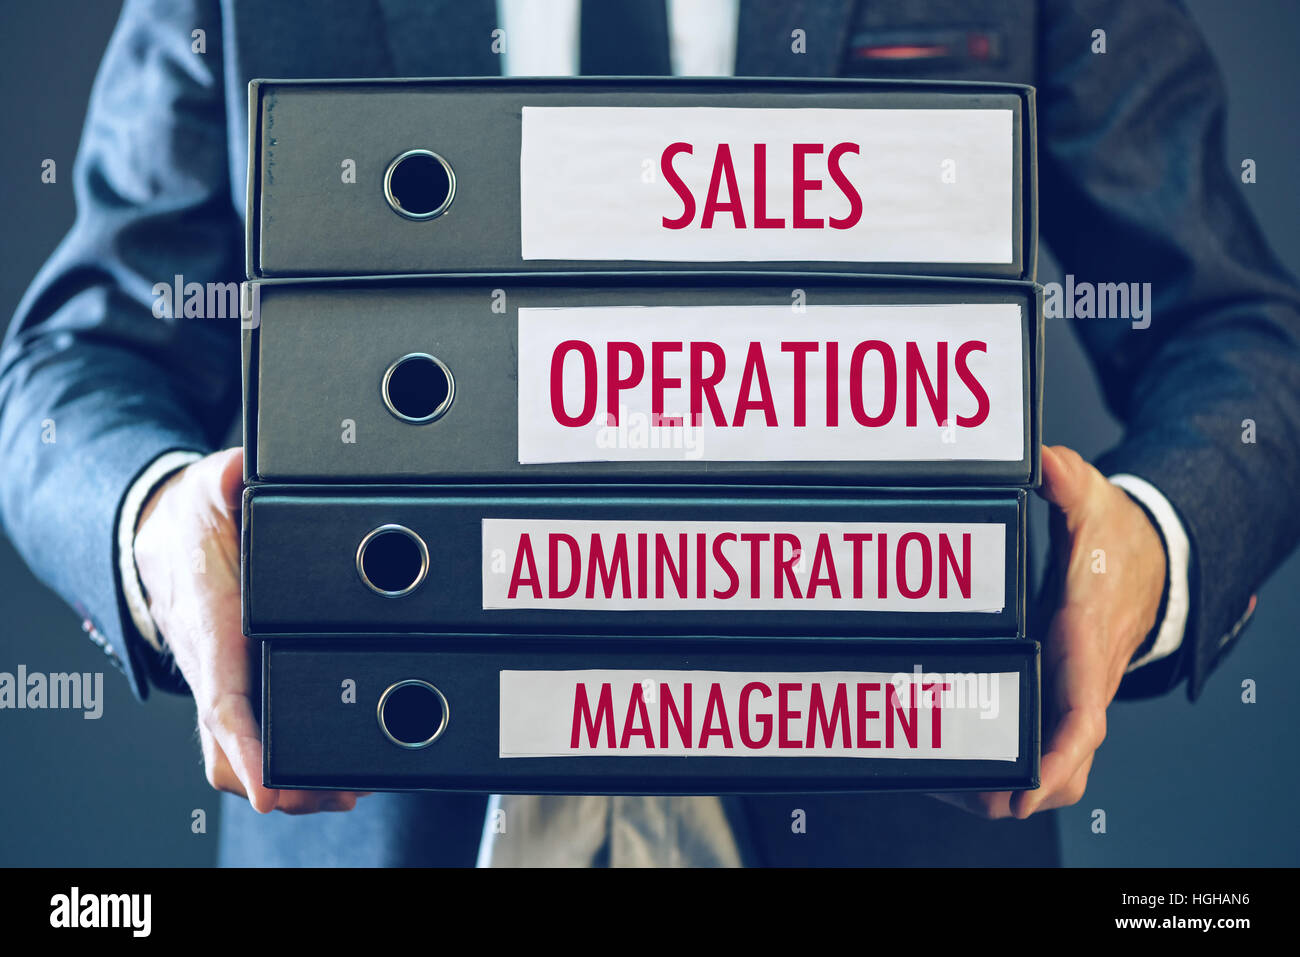 Four core business functions - sales, operations, administration and management with businessman holding ring binders - Stock Image